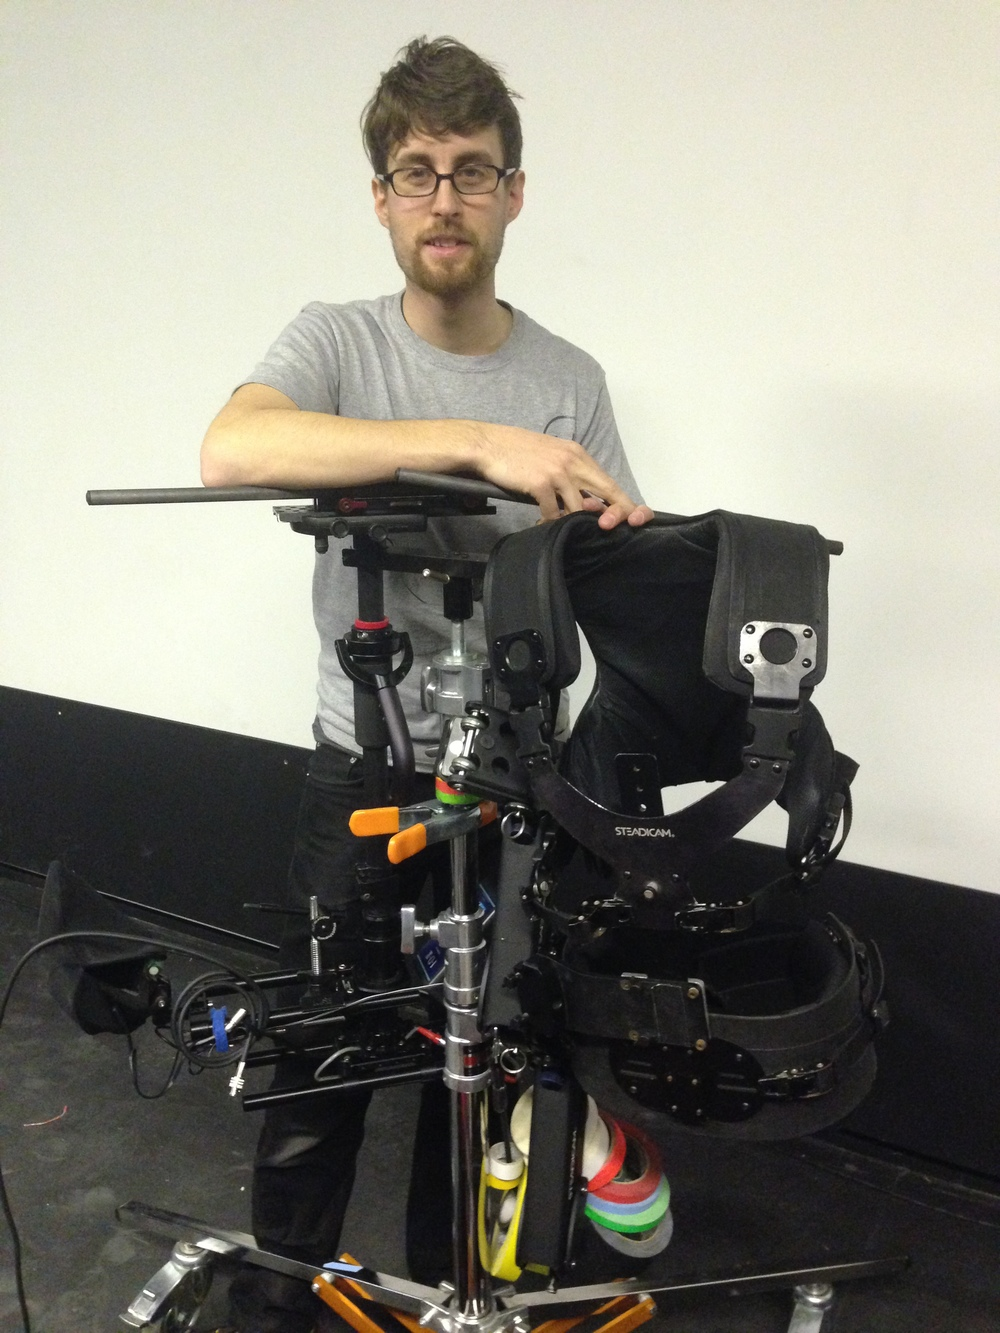 Loic De Lamb Stedicam operator- his lightweigh rig was a gift from Larry McConkey. Thanks for helping Loic. Wish I had taken your advice and gotten a focus puller who knew how to use a remote- I'll never make that mistake again